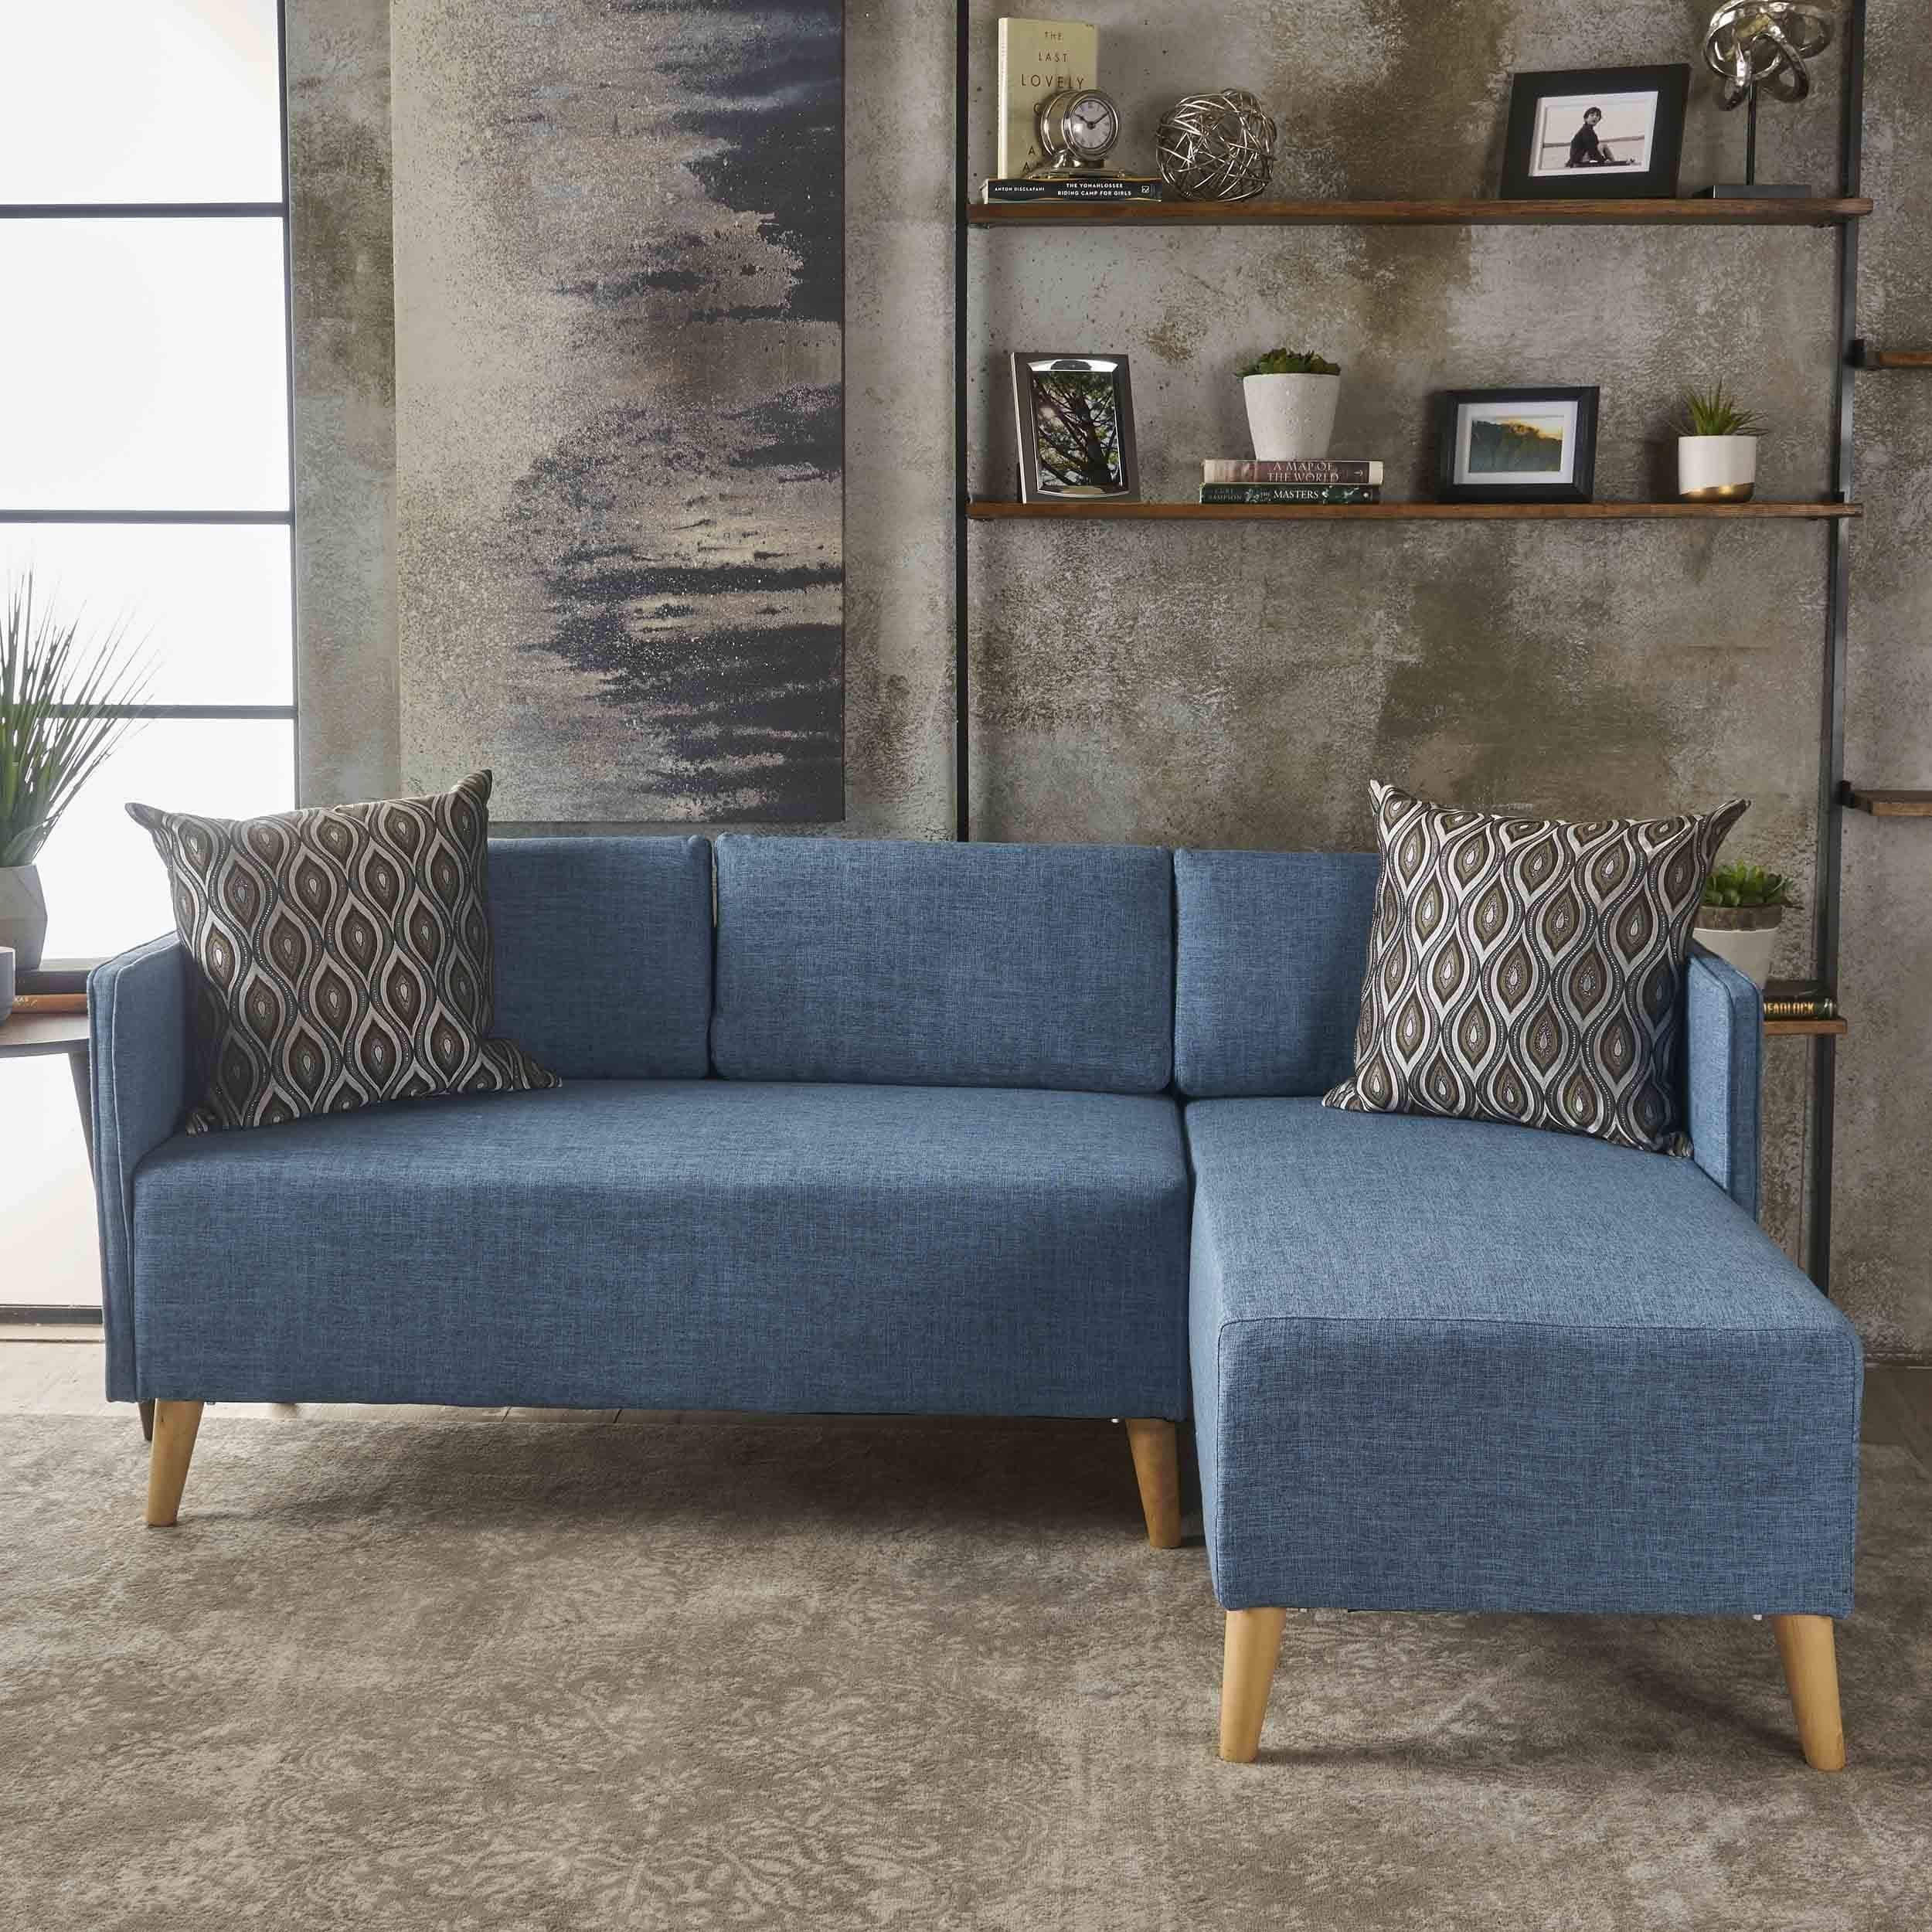 Augustus Mid Century Modern 2 piece Fabric Chaise Sectional Sofa